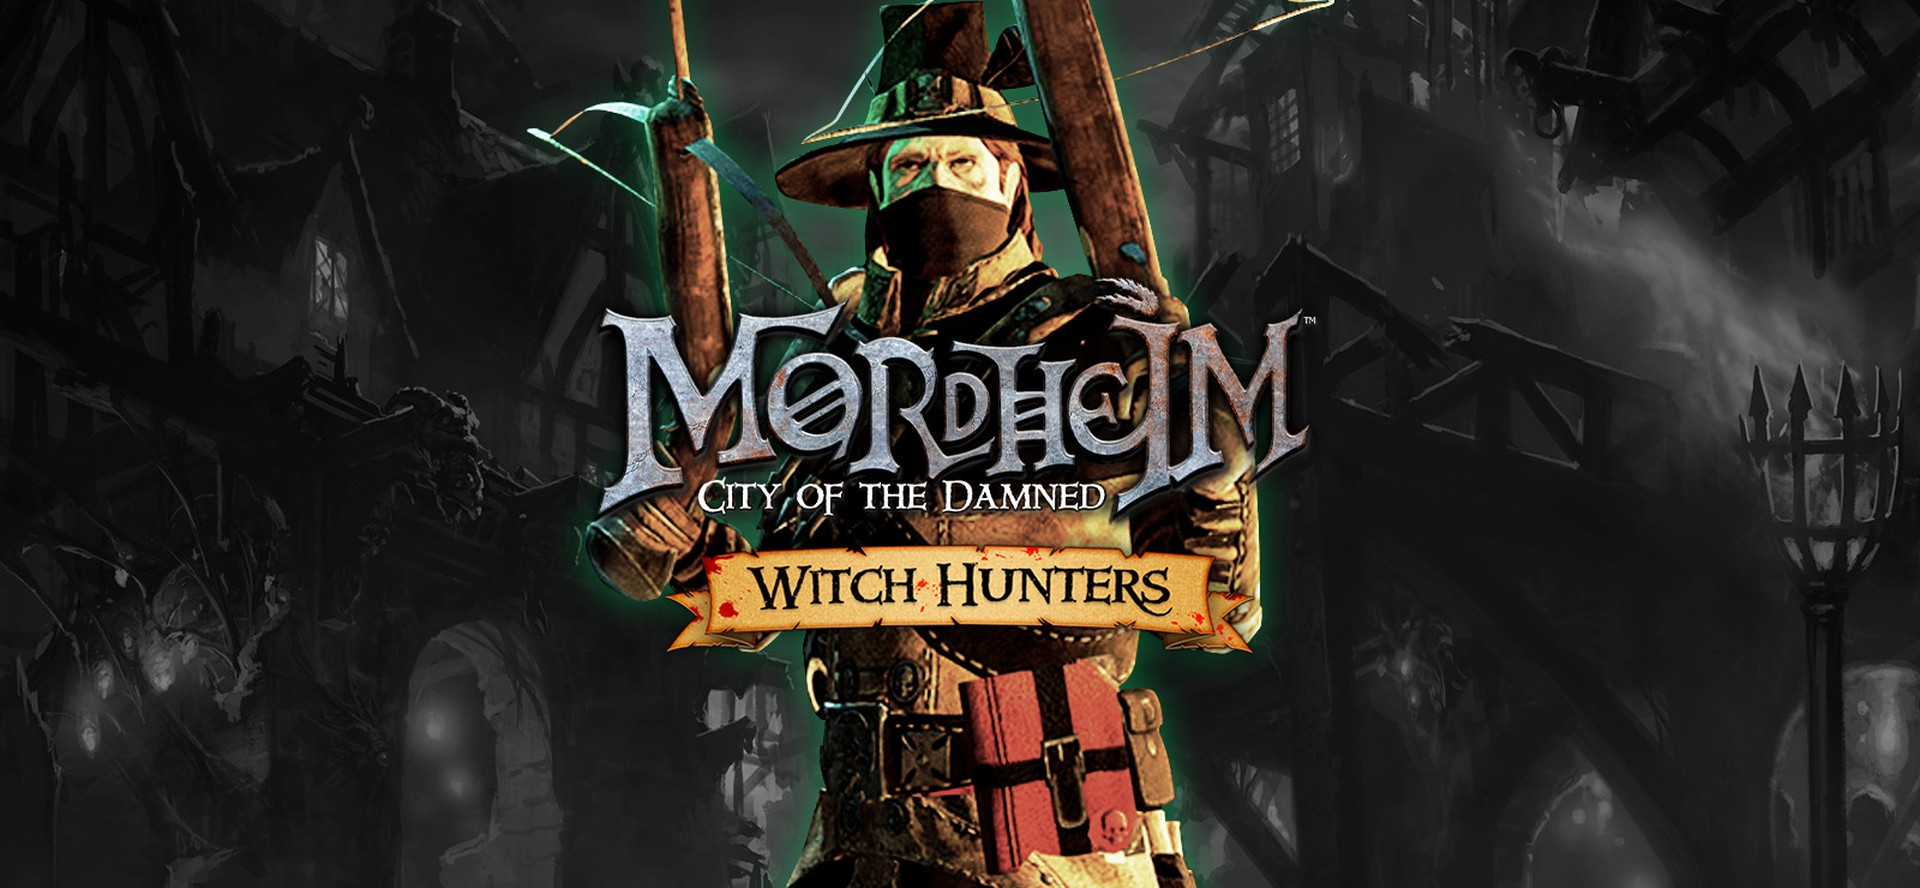 Mordheim: City of the Damned - Witch Hunters